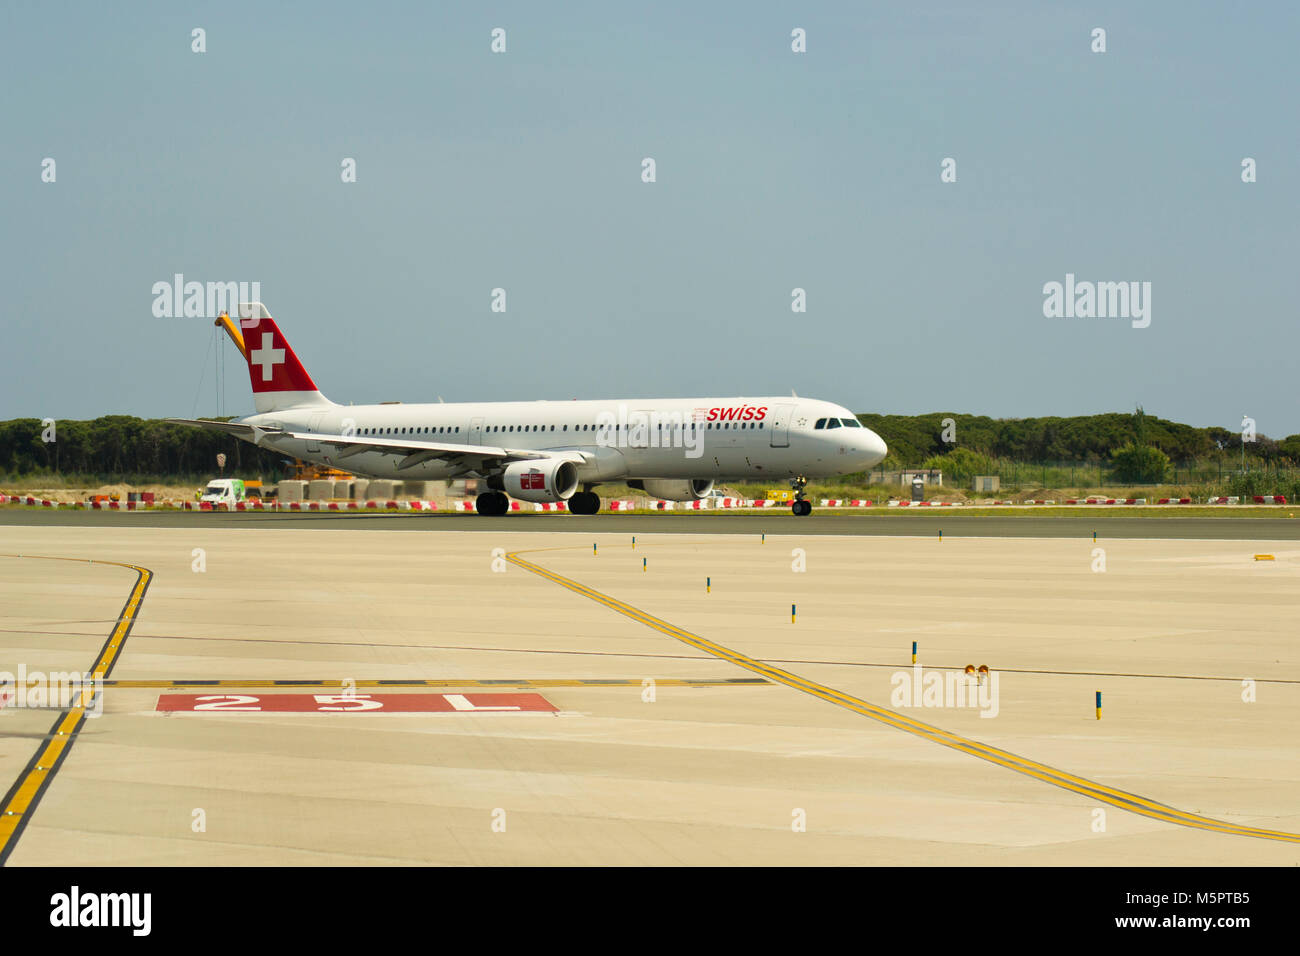 BARCELONA, SPAIN - MAY 30, 2012: A Swiss Airbus 321 starting take off run on from runway 25L in El Prat BarcelonaStock Photo